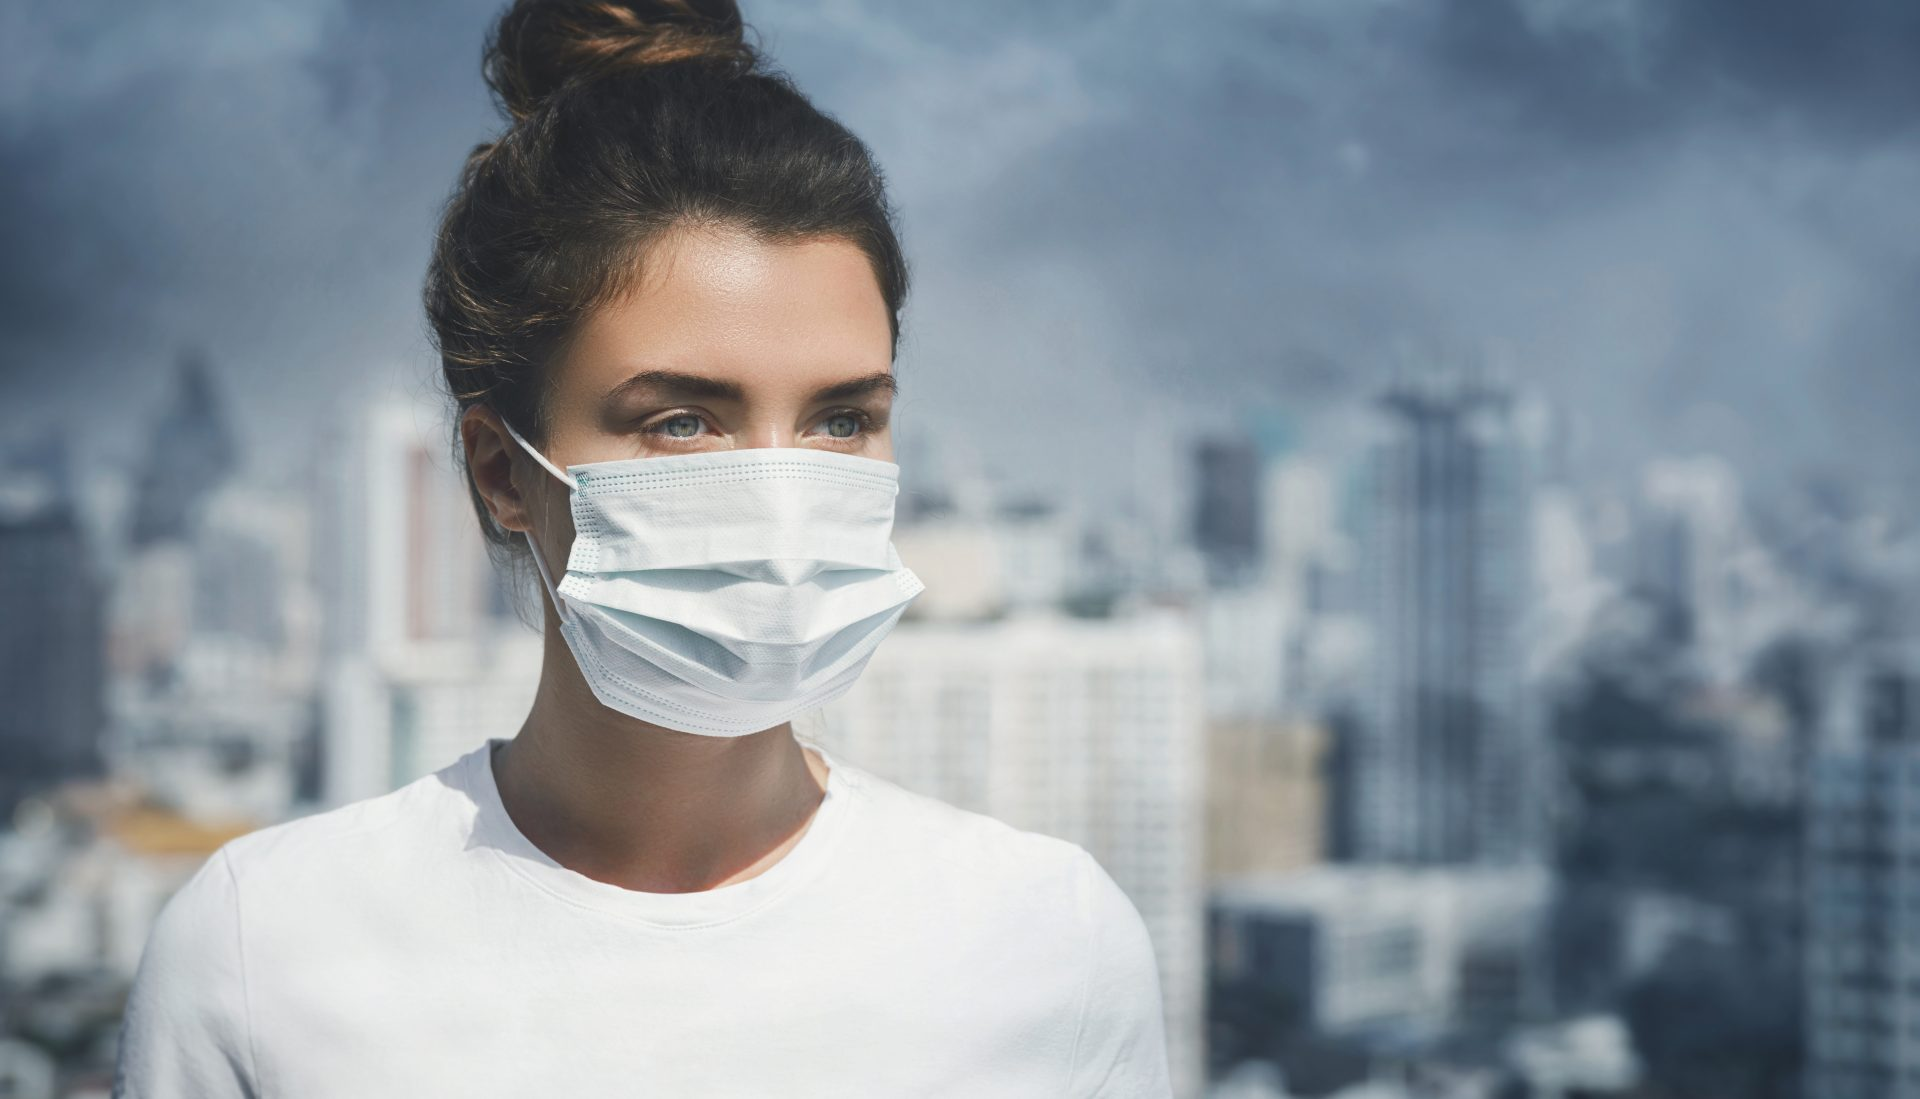 Young woman wearing face mask in polluted cityscape